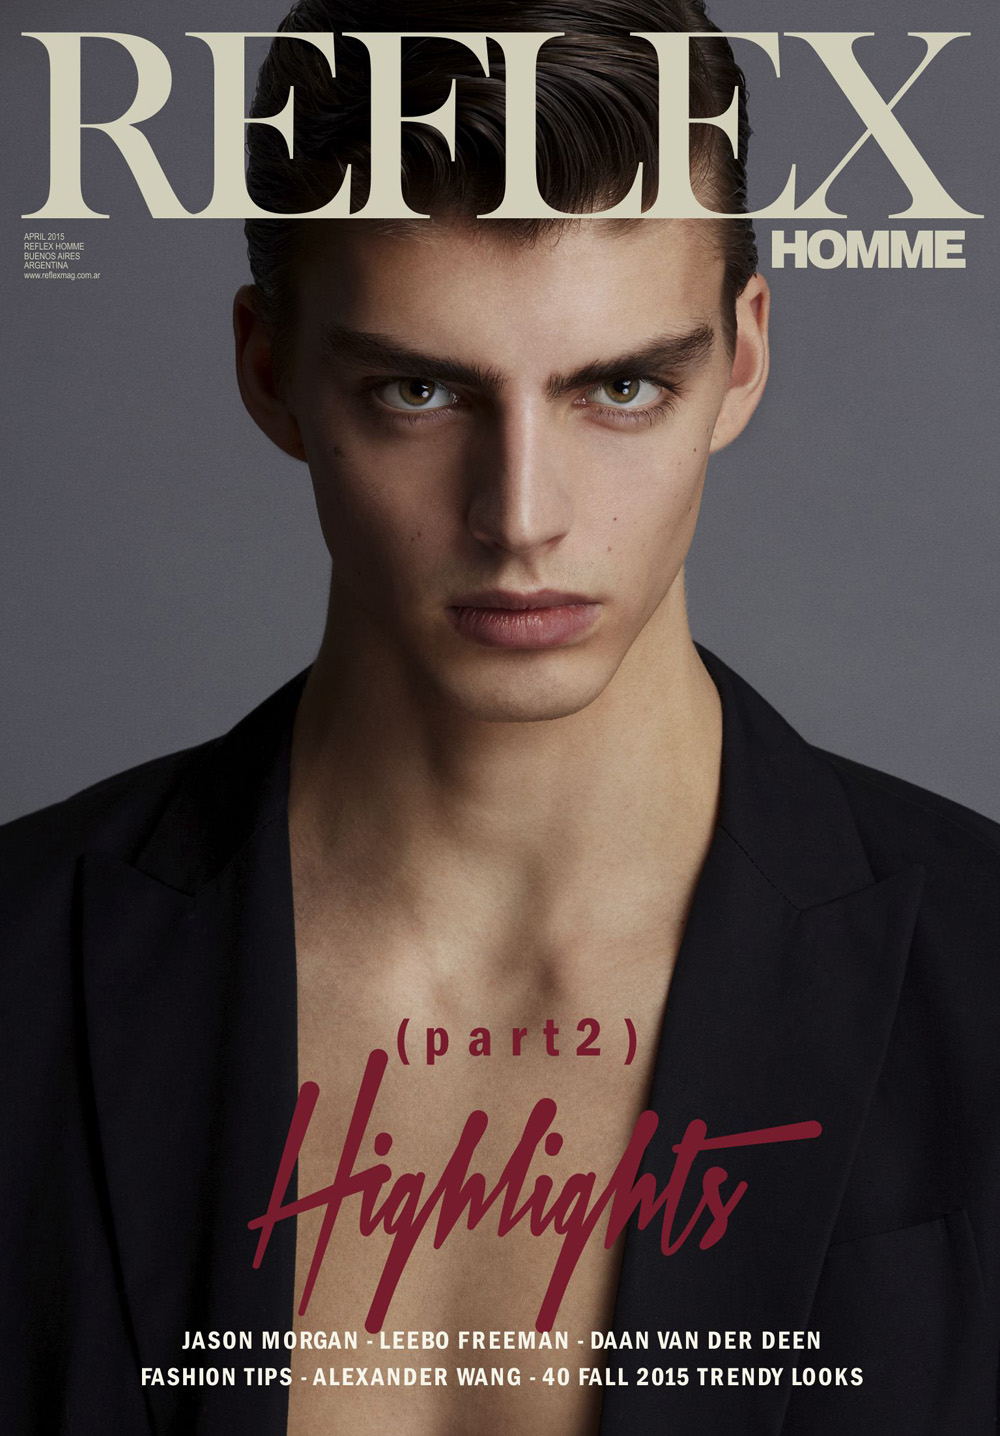 """Highlights Part 2"" is starring by Daan Van Der Deen for Reflex Homme shot by Anthony Batista , styled by Giorgio Ammirabile, art direction by Paul Lamb, grooming by Eloise Cheung. Supermodel signed by Soul Artist Management."